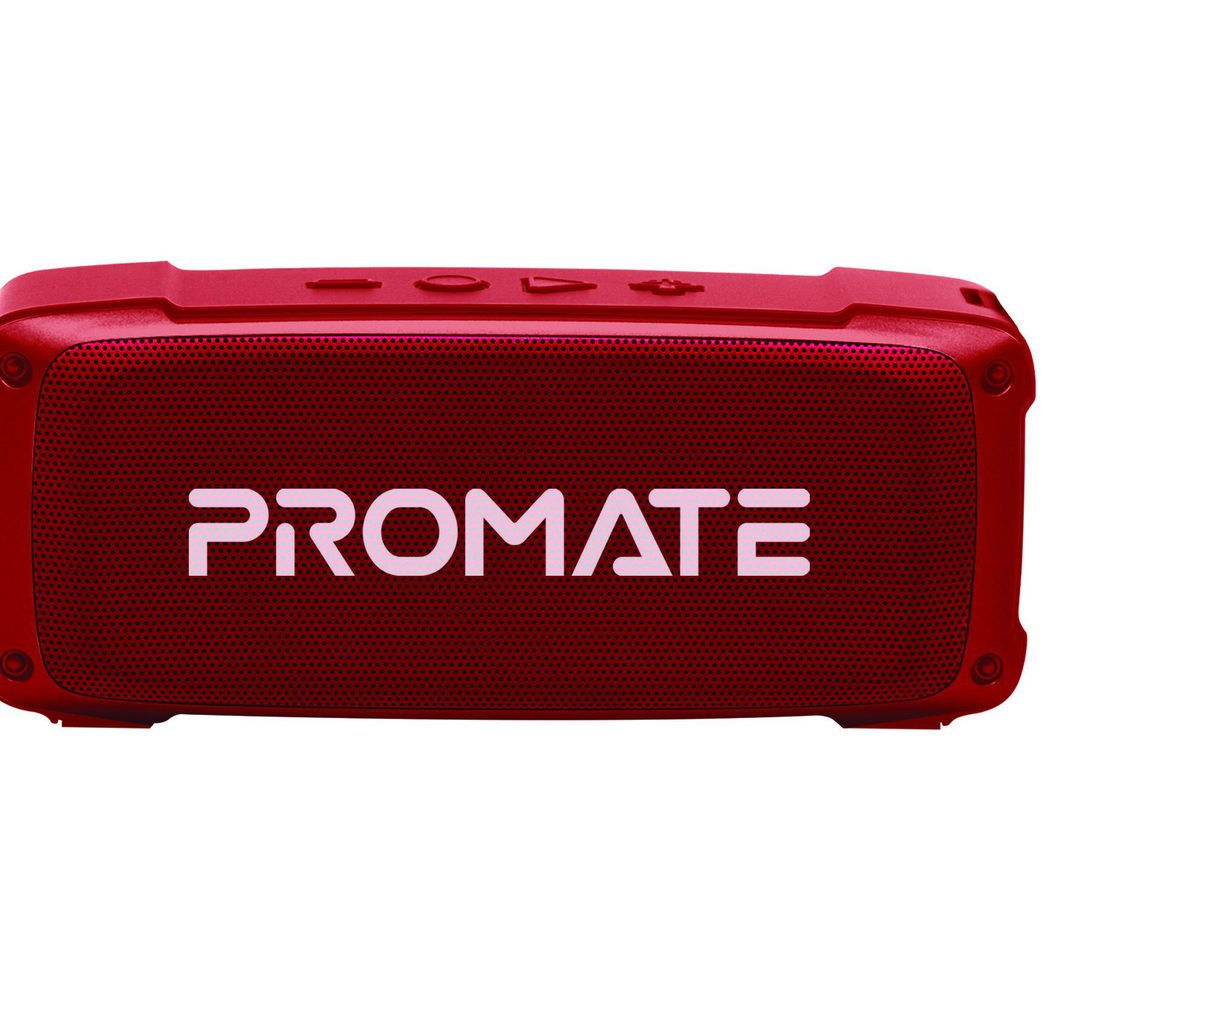 Promate Bluetooth Speaker, Premium 6W HD Rugged Wireless Speaker with 4H Playtime, Built-in Mic, FM Radio, 3.5mm Aux Port, TF Card Slot and USB Media Port for iPhone 12, iPad Pro, iPod, Android, OutBeat Maroon